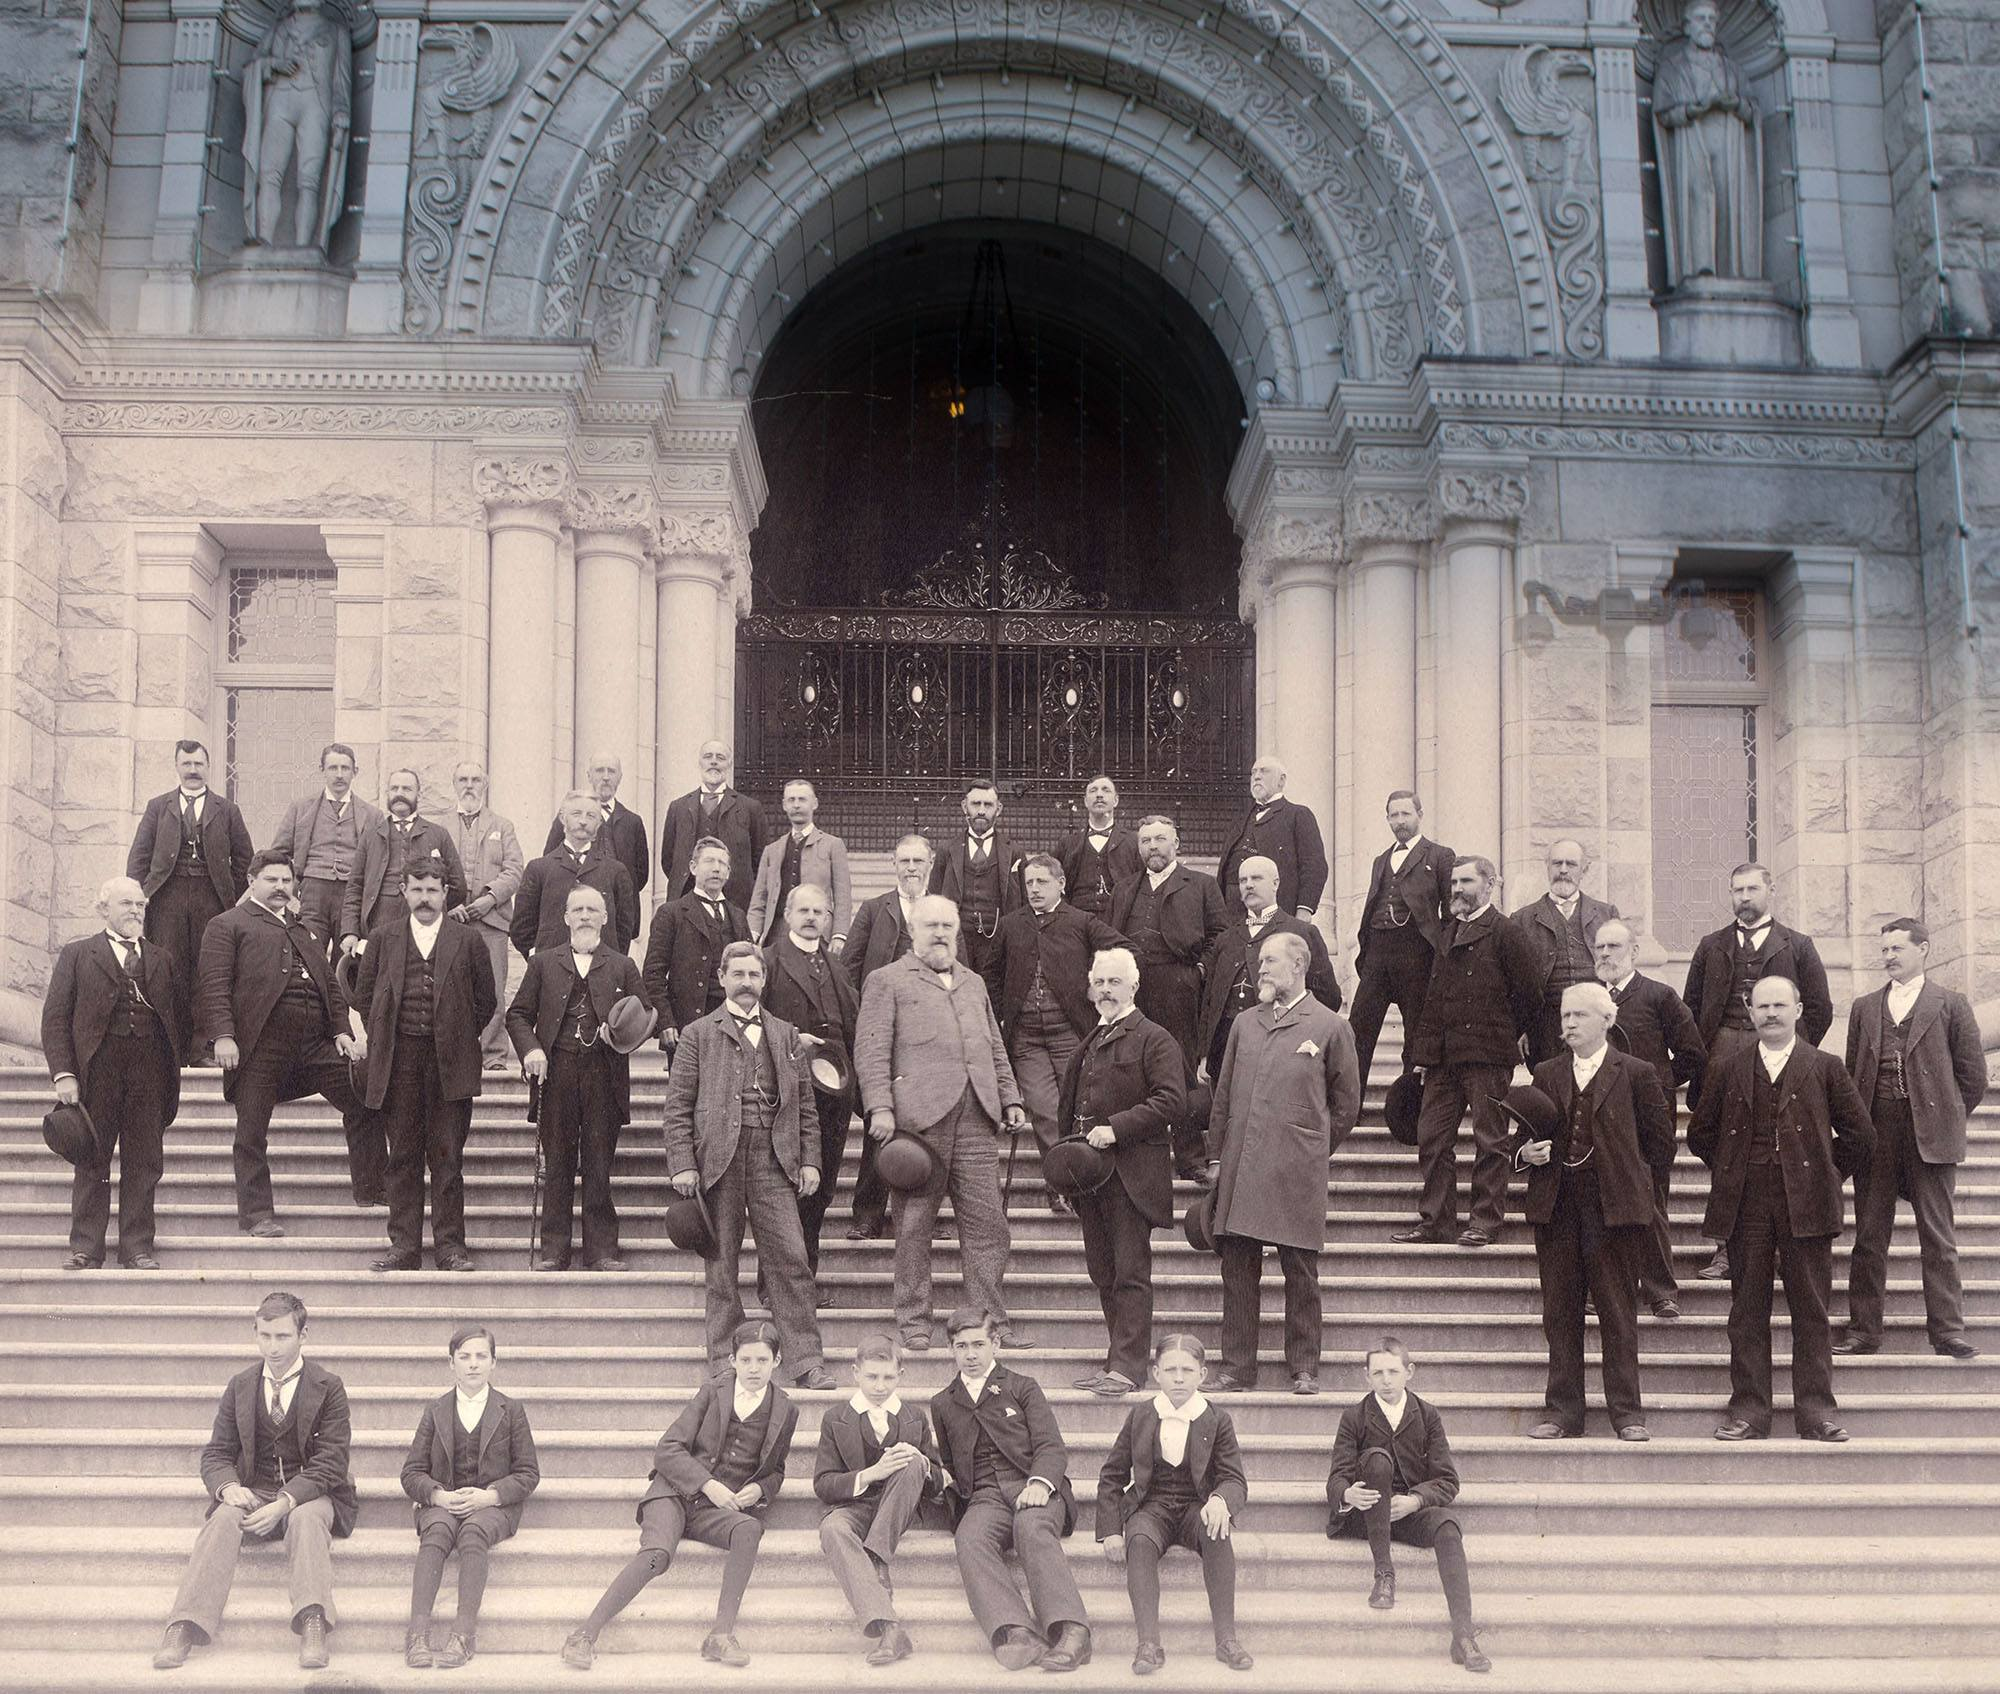 The government of British Columbia on the steps of the BC Legislature in the 1880s (Vancouver Archives)